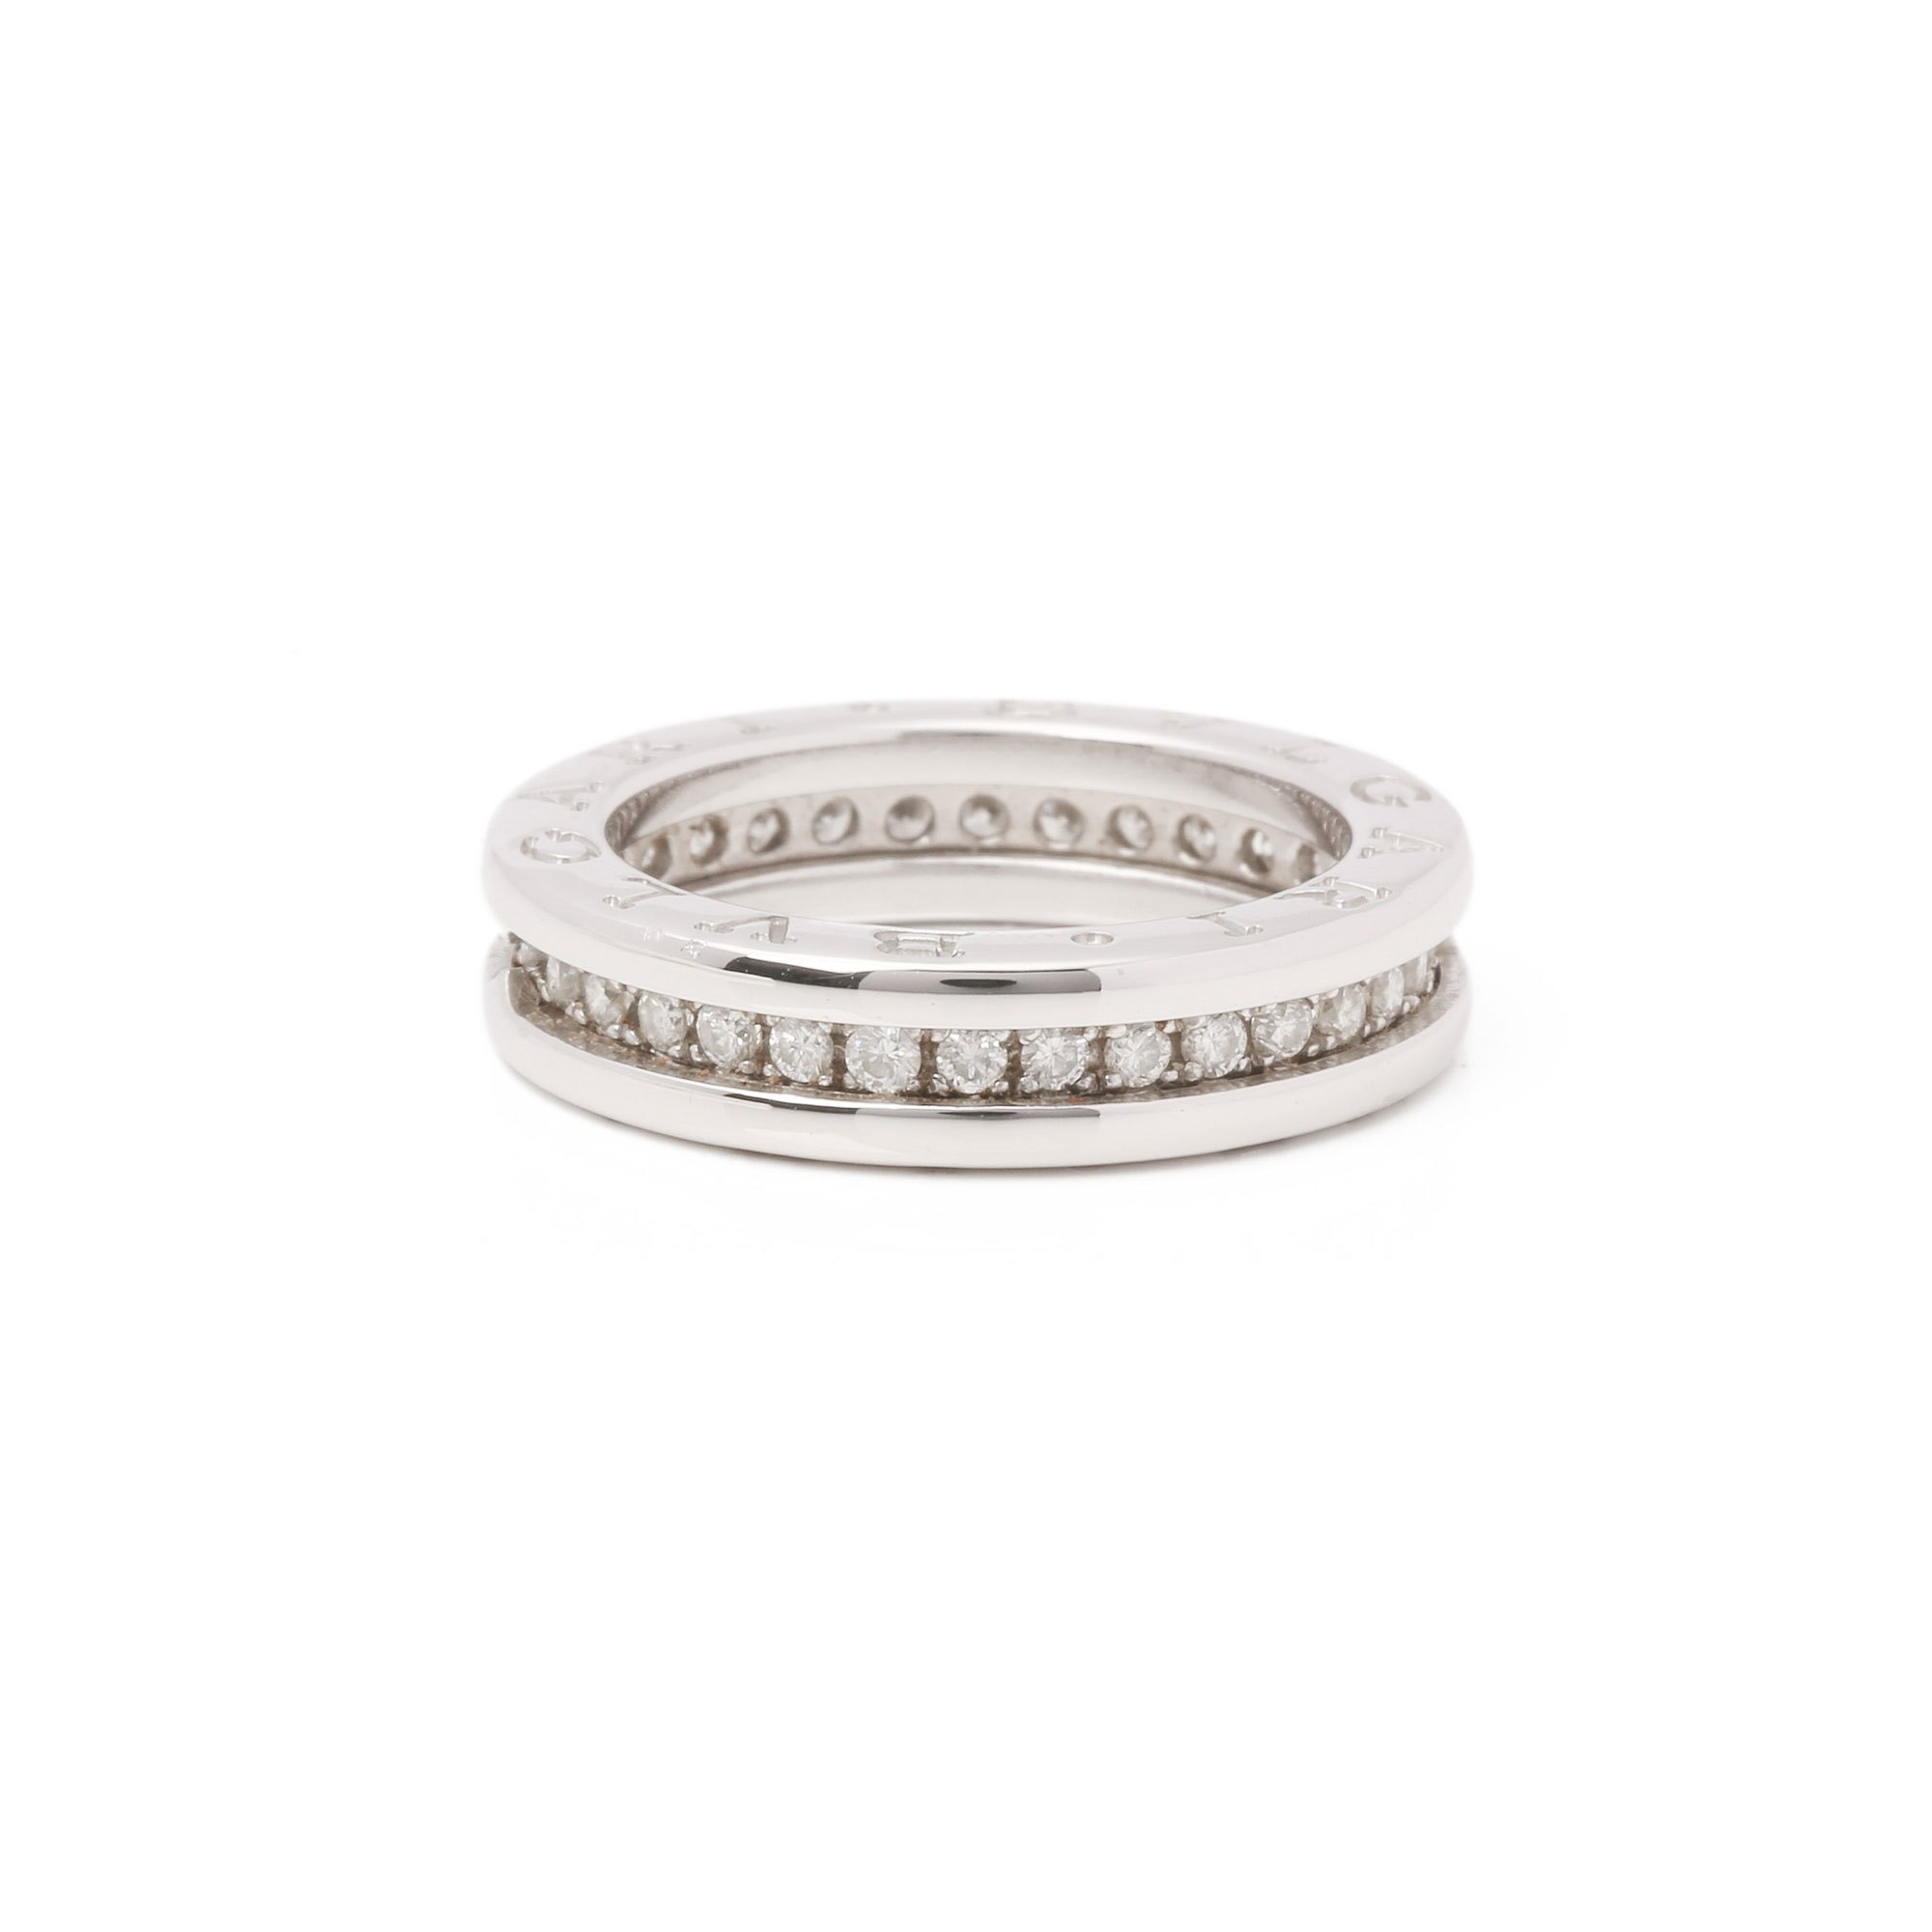 Bulgari B Zero 1 Diamond Ring